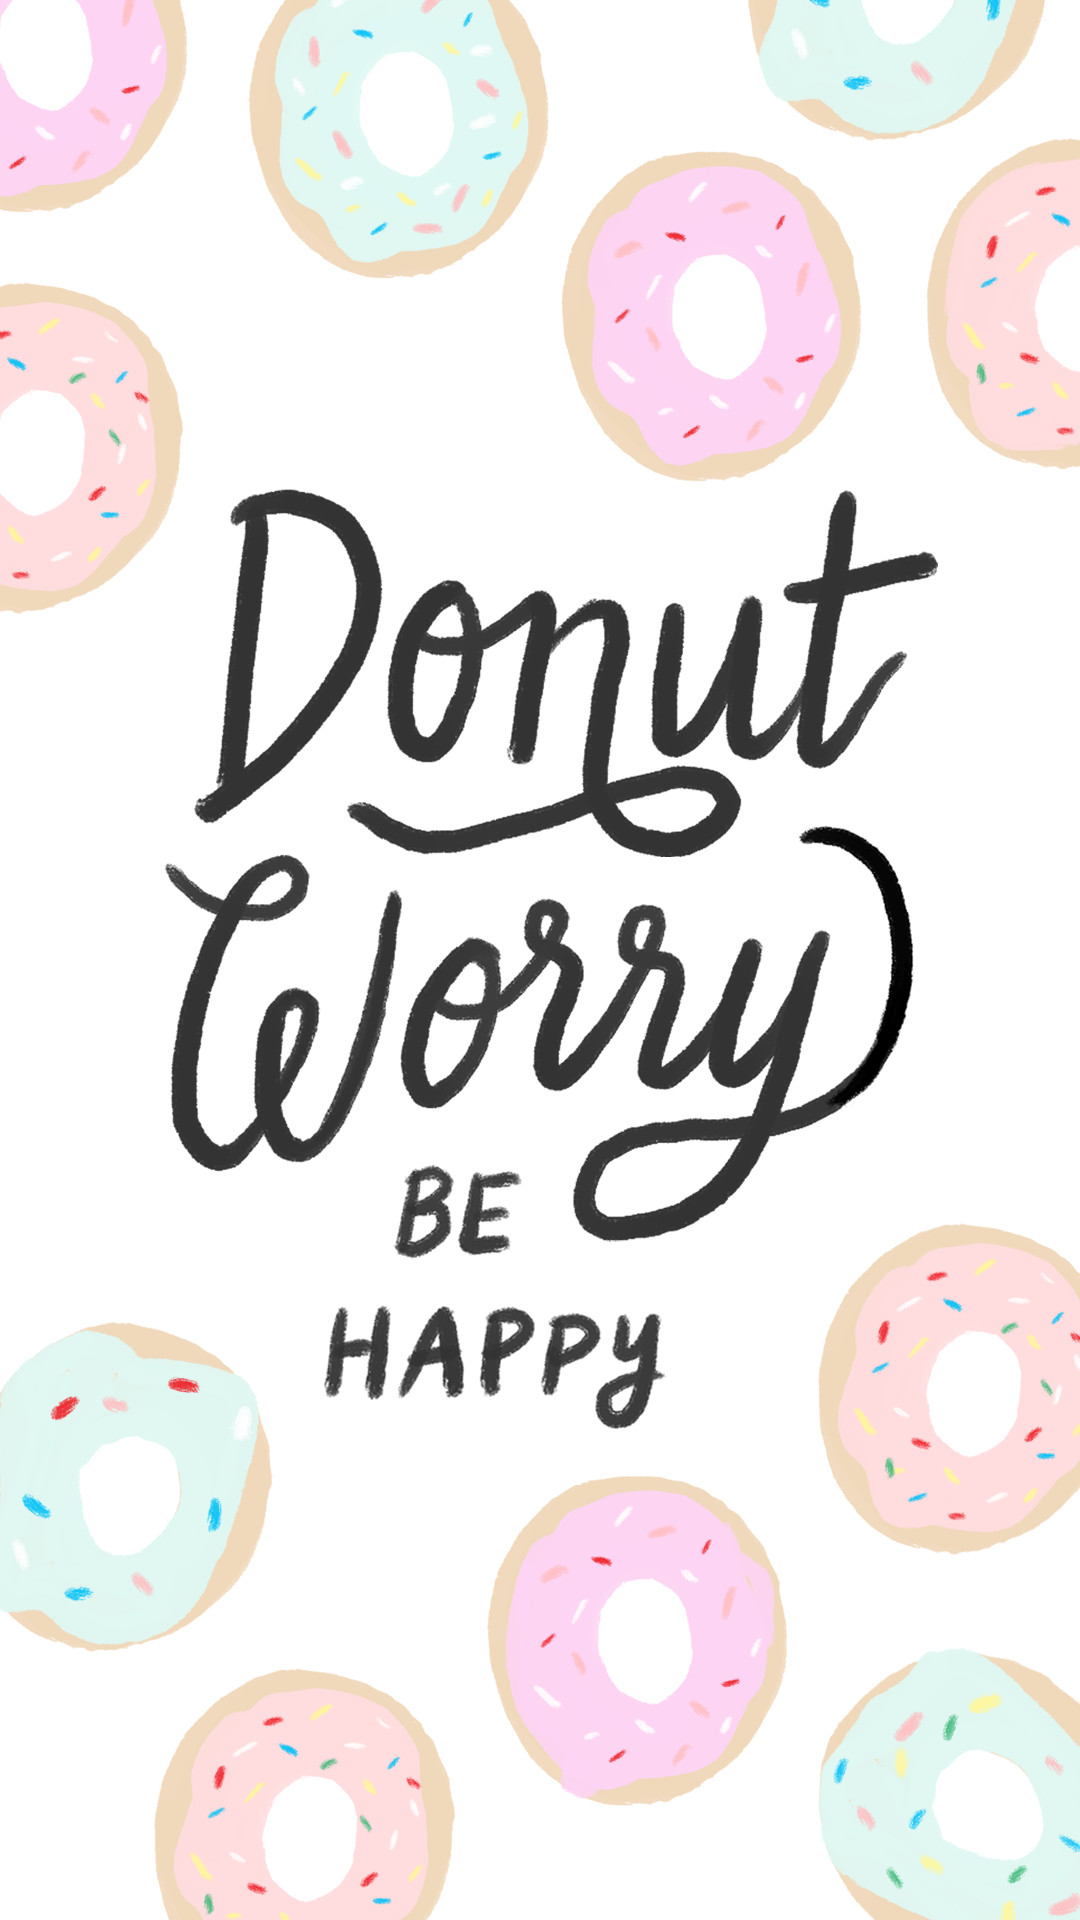 iphone-donut-worry.png (1080×1920)   Wallpapers   Pinterest   Wallpaper,  Donuts and Phone